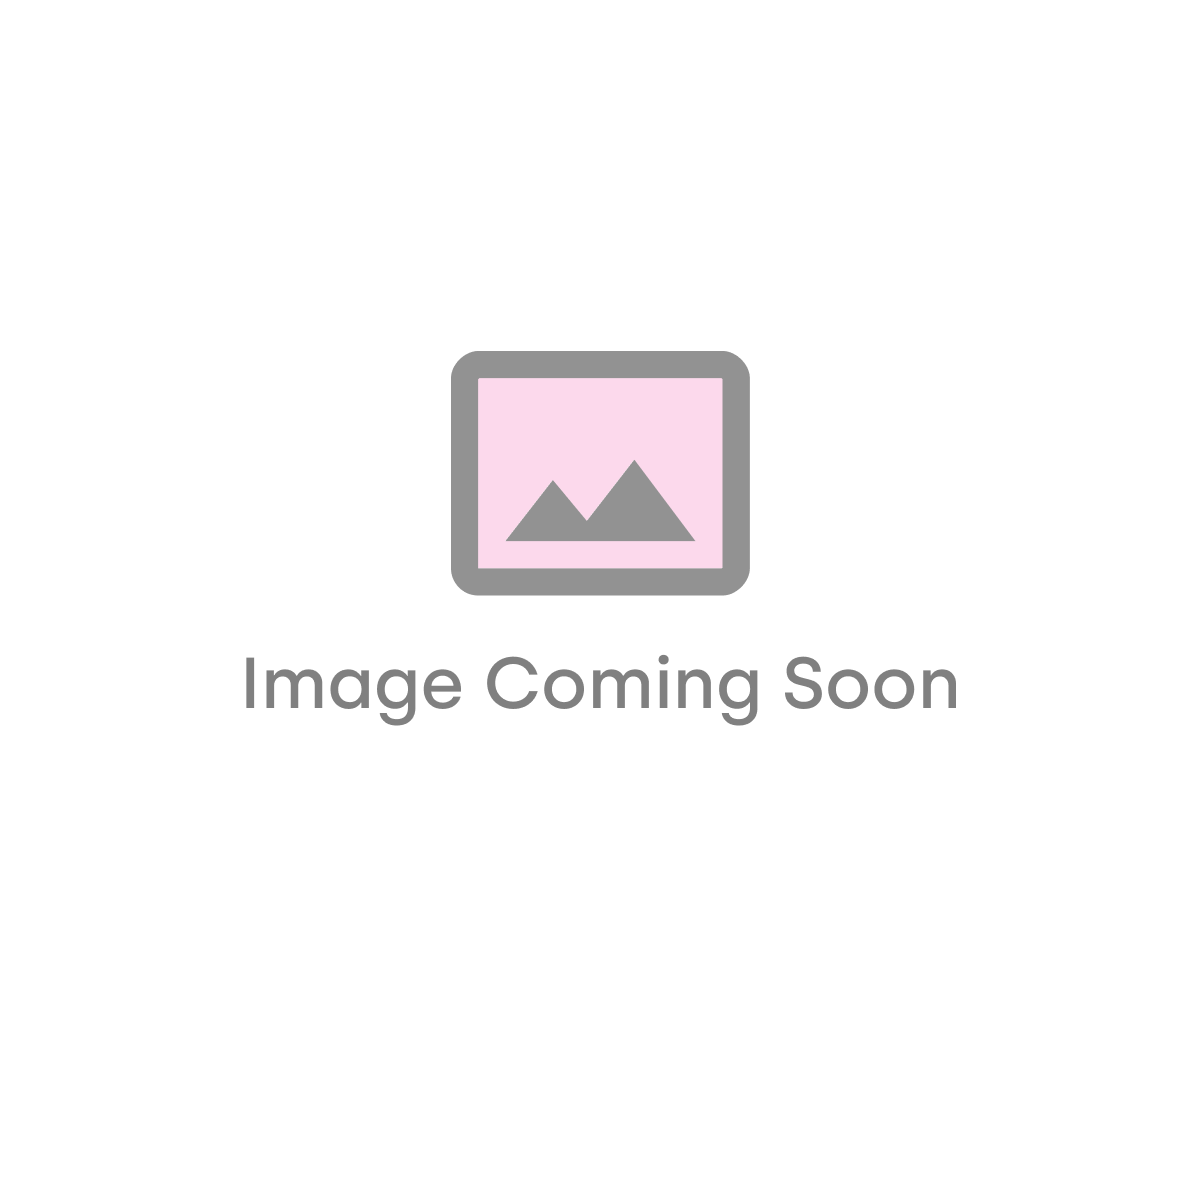 Aqualisa Quartz QZE9501 9.5kw Electric Shower - Chrome (10884)